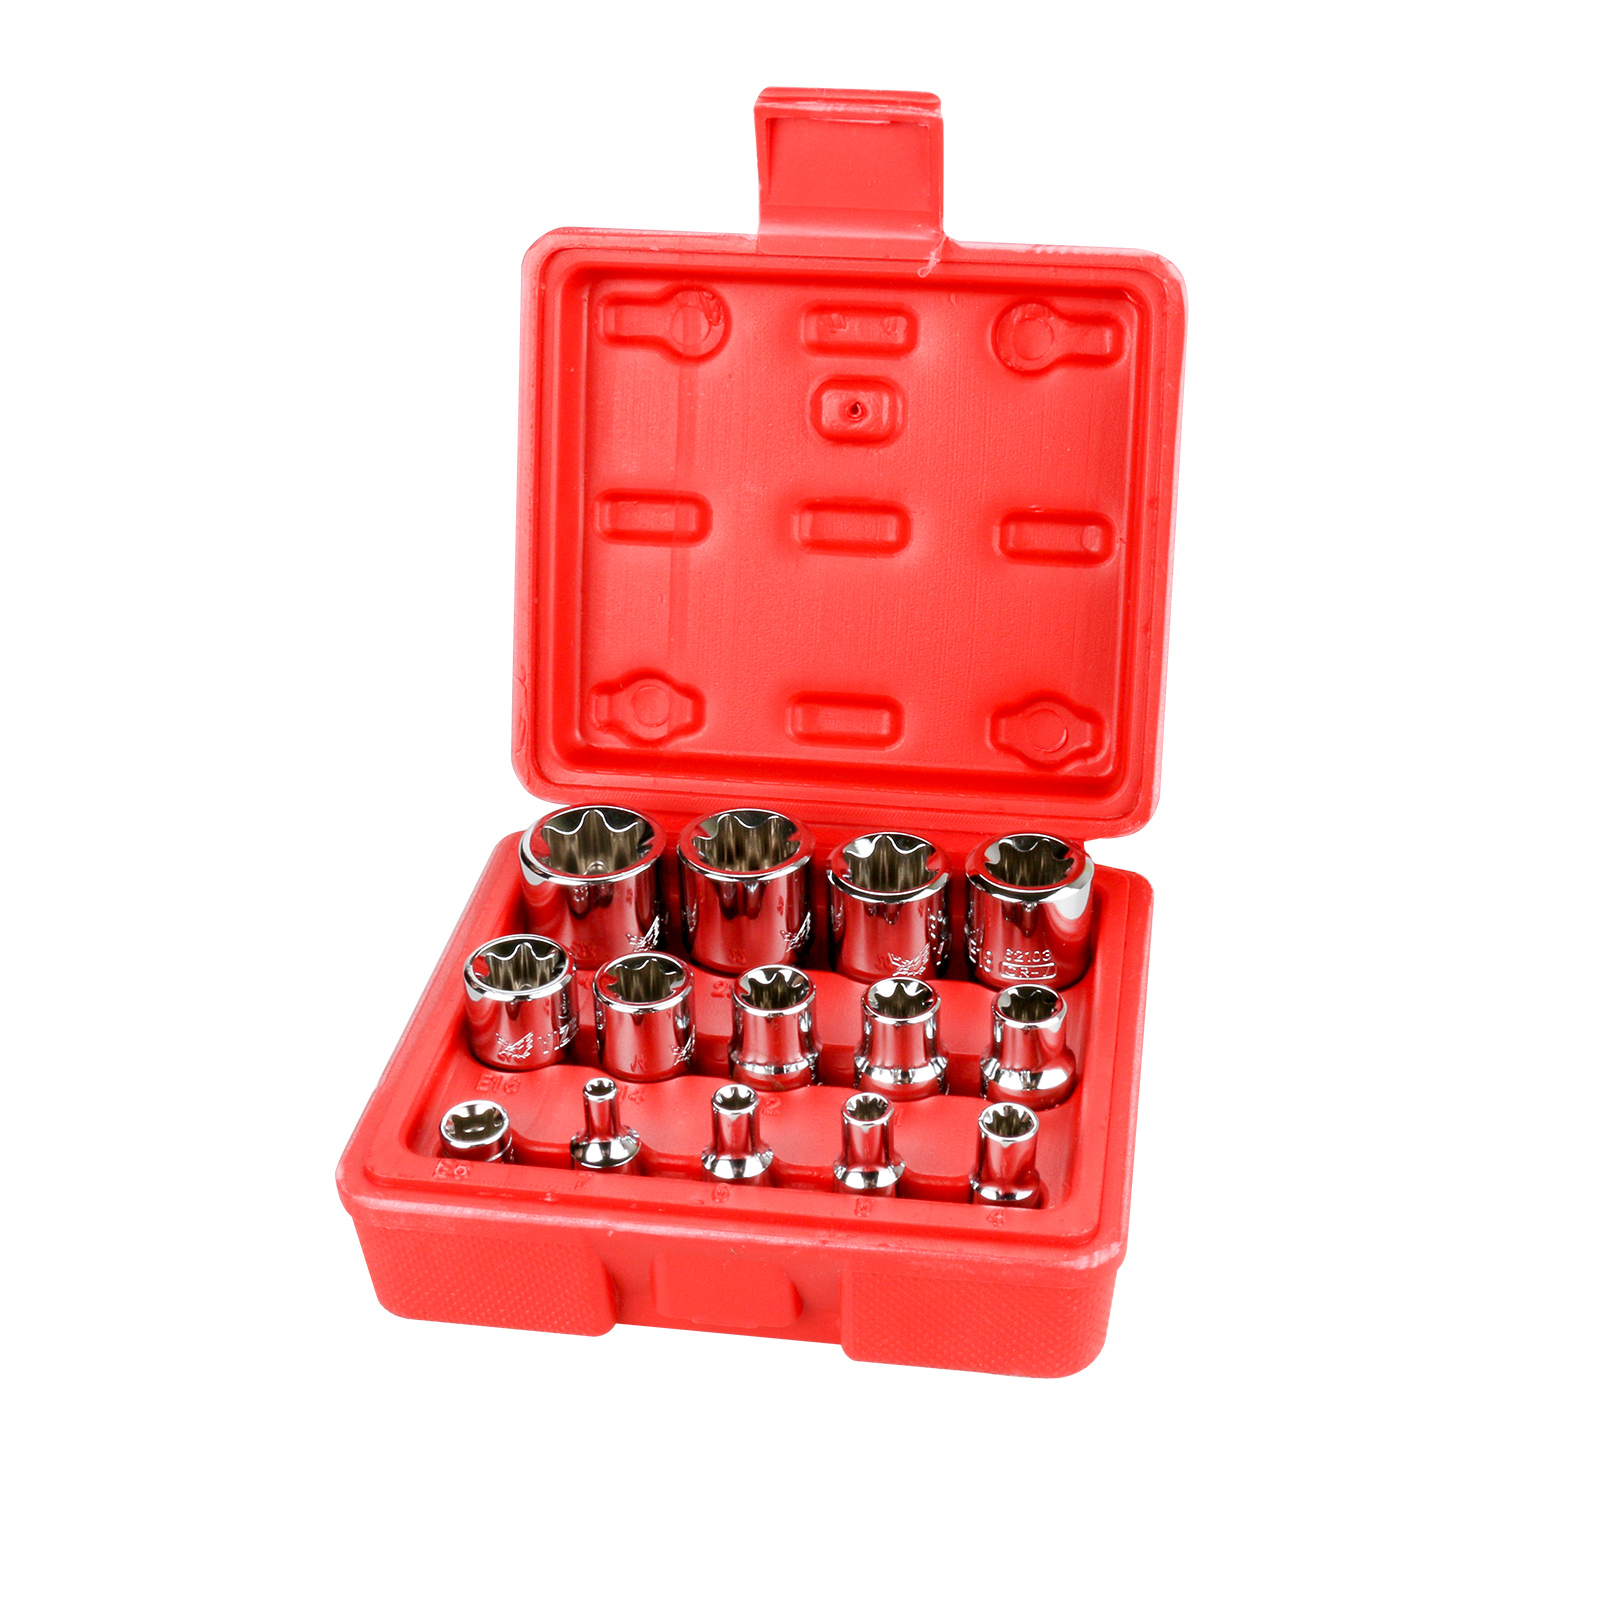 14pcs Torx Socket Star shaped Set 1 4 3 8 1 2 Drive E4 E24 CR